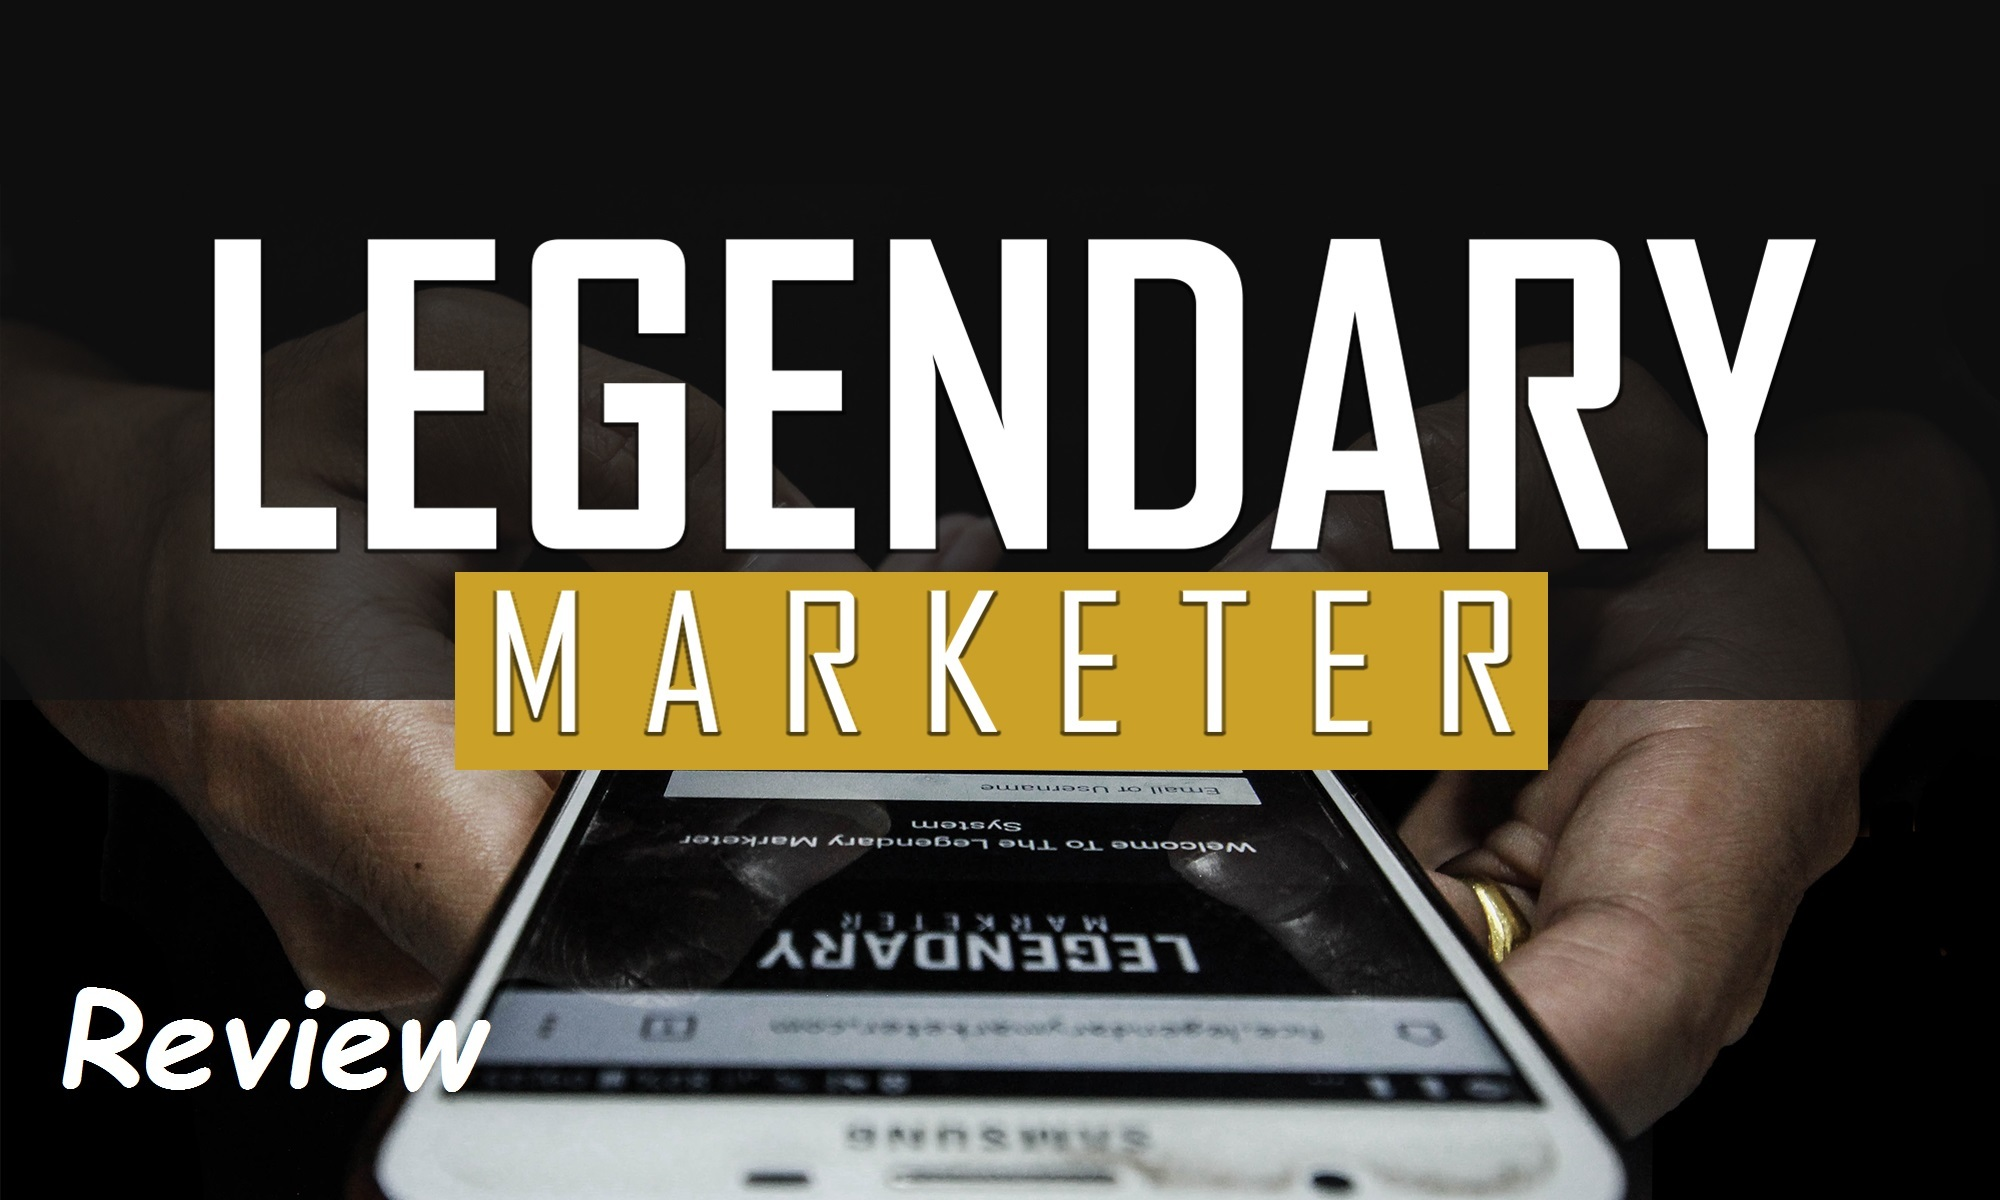 Legendary Marketer Internet Marketing Program Rate